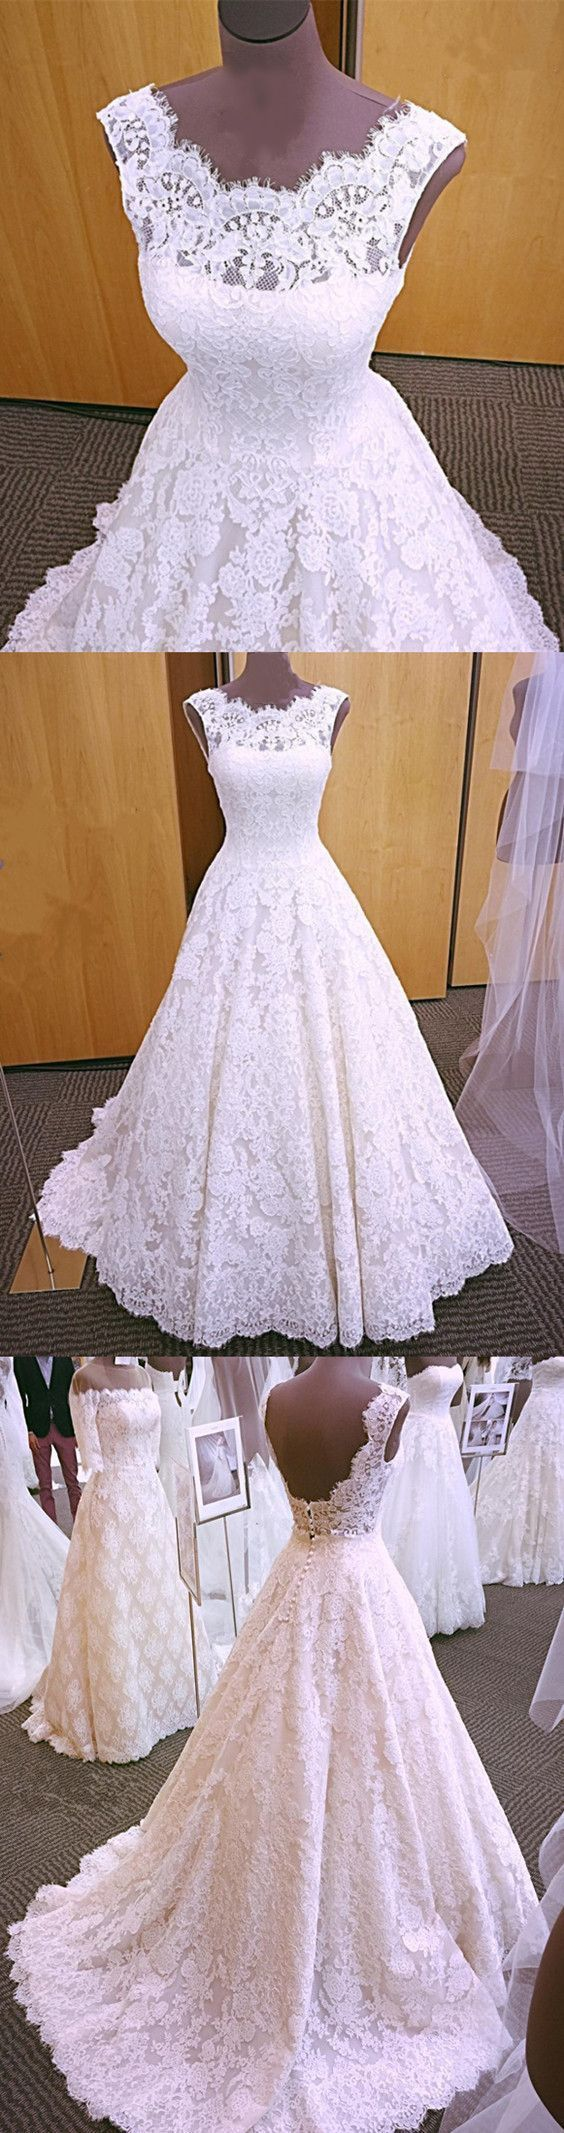 Modest Lace Cap Sleeves Open Back Princess Wedding Dresses For Bride #laceweddingdresses